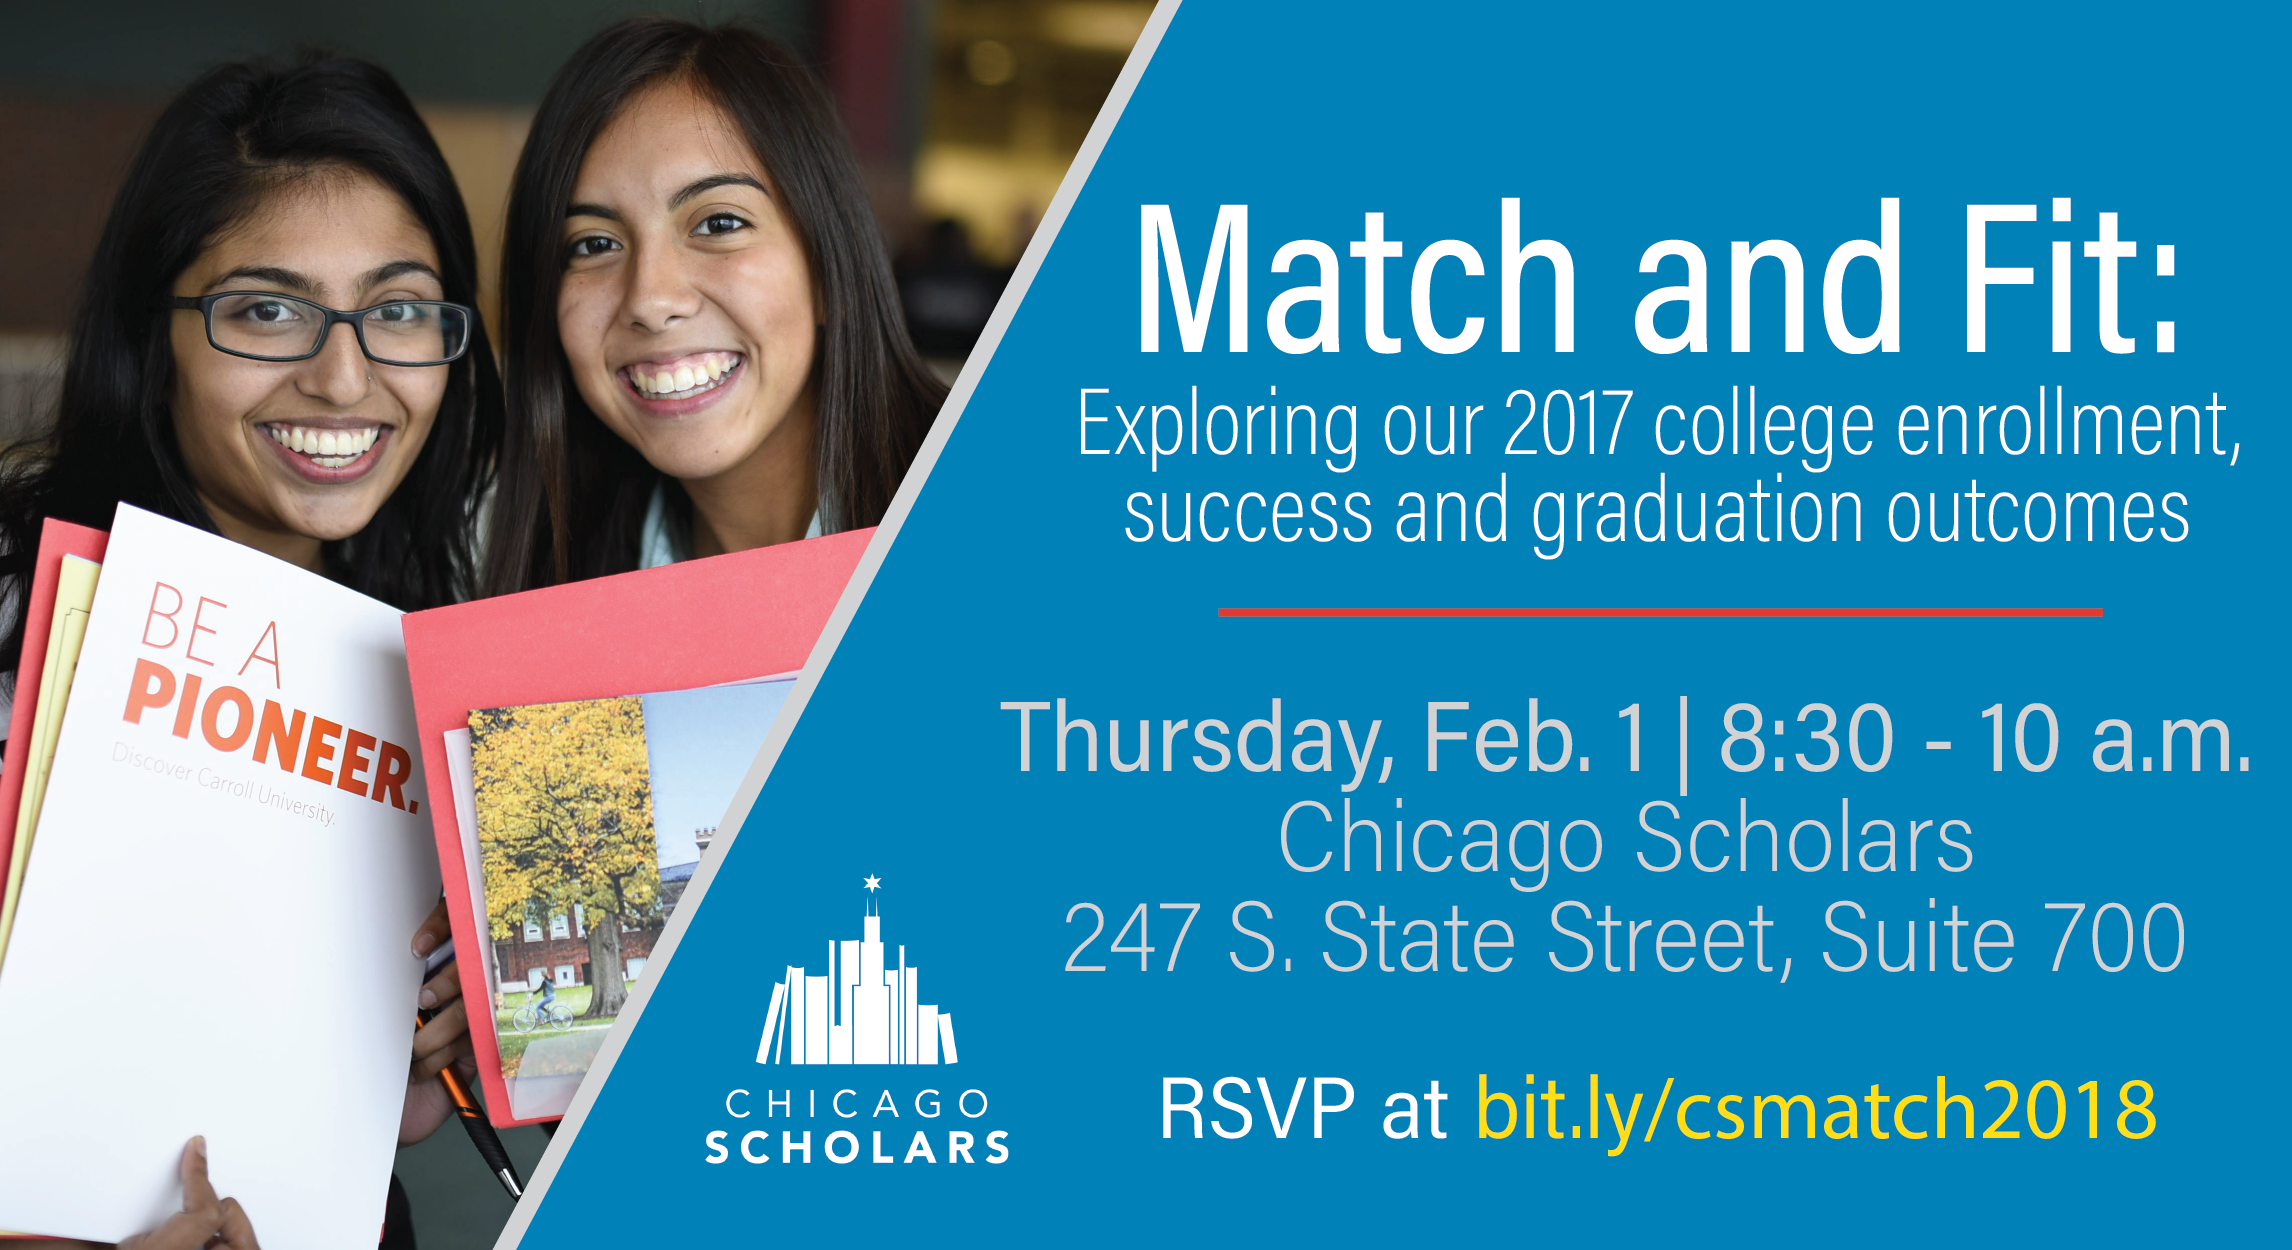 Match and Fit Invite 2018-01.png